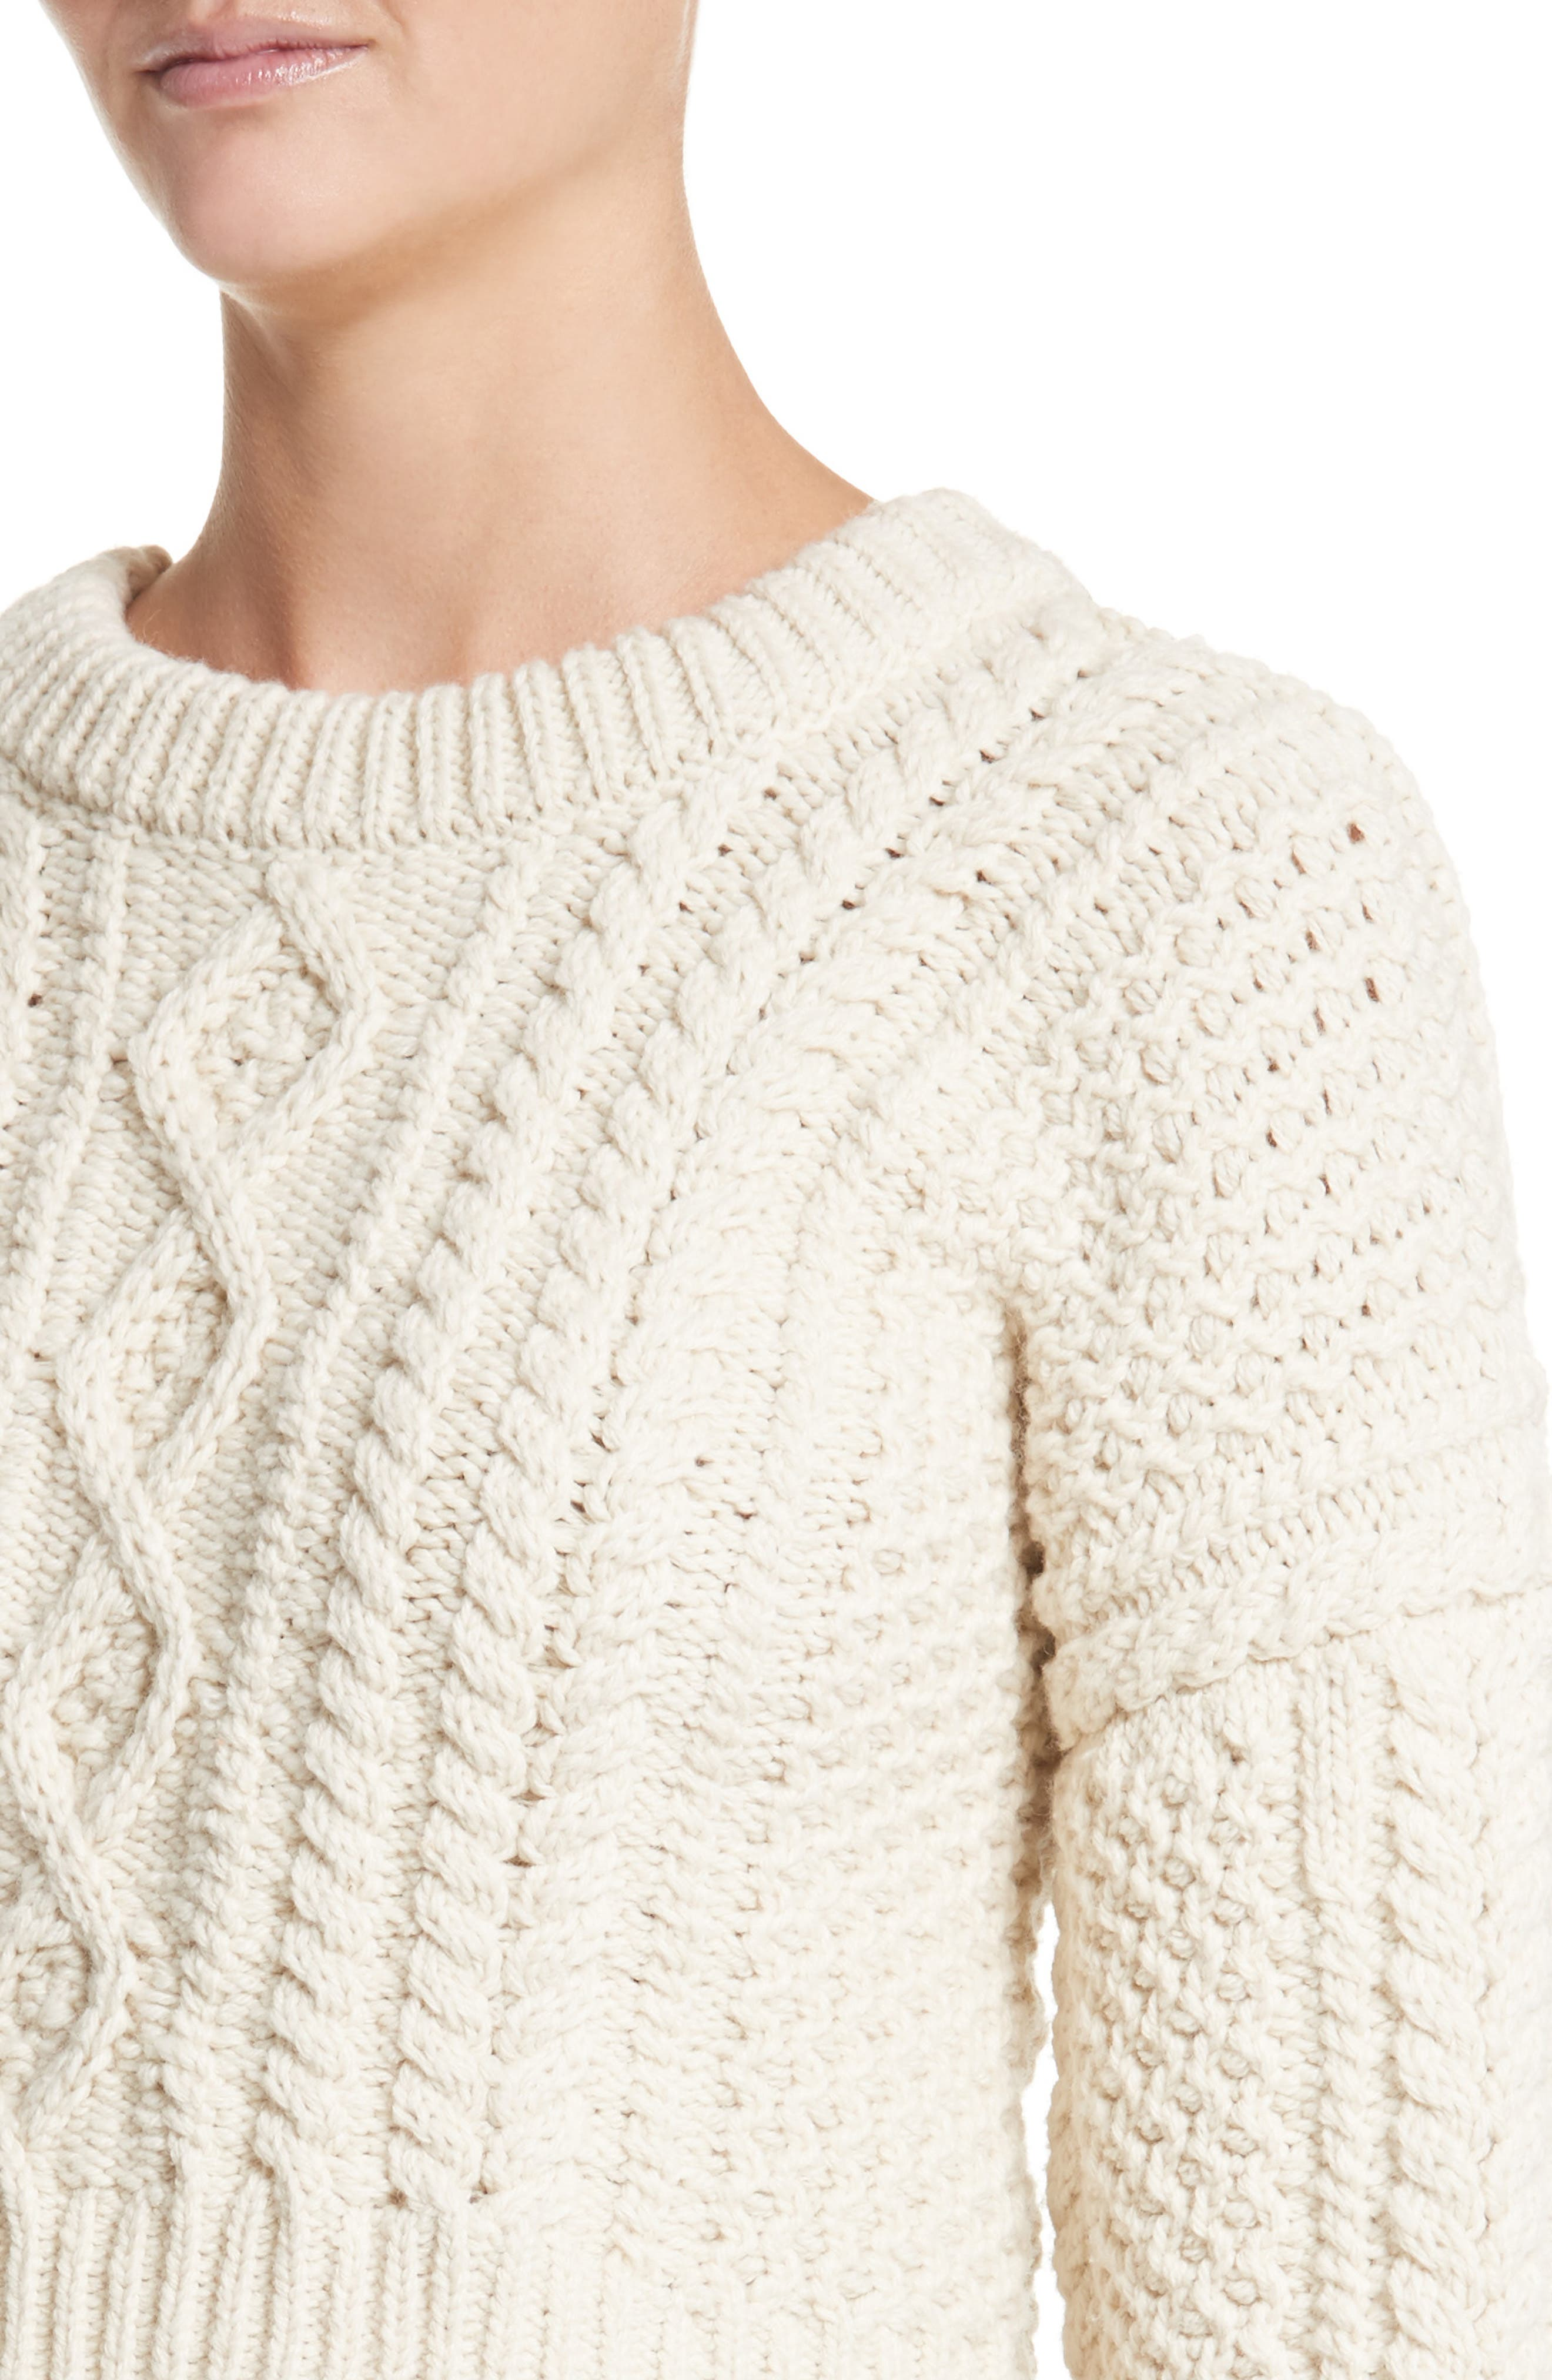 Back Strap Cable Knit Crop Sweater,                             Alternate thumbnail 4, color,                             900